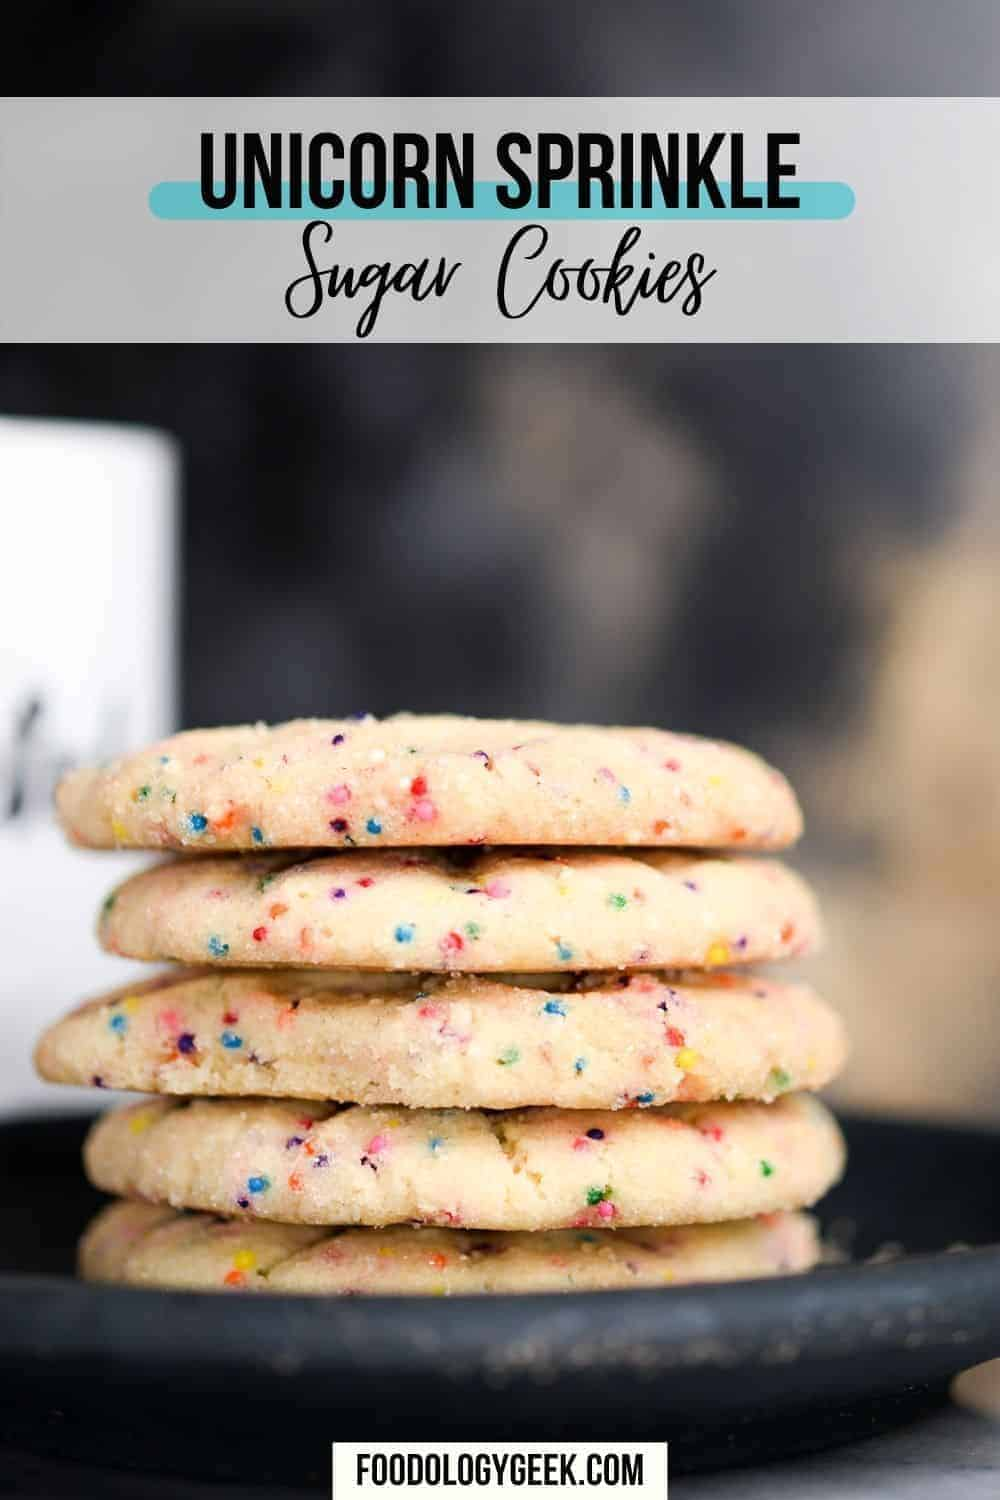 unicorn sprinkle sugar cookies served with a cup of coffee